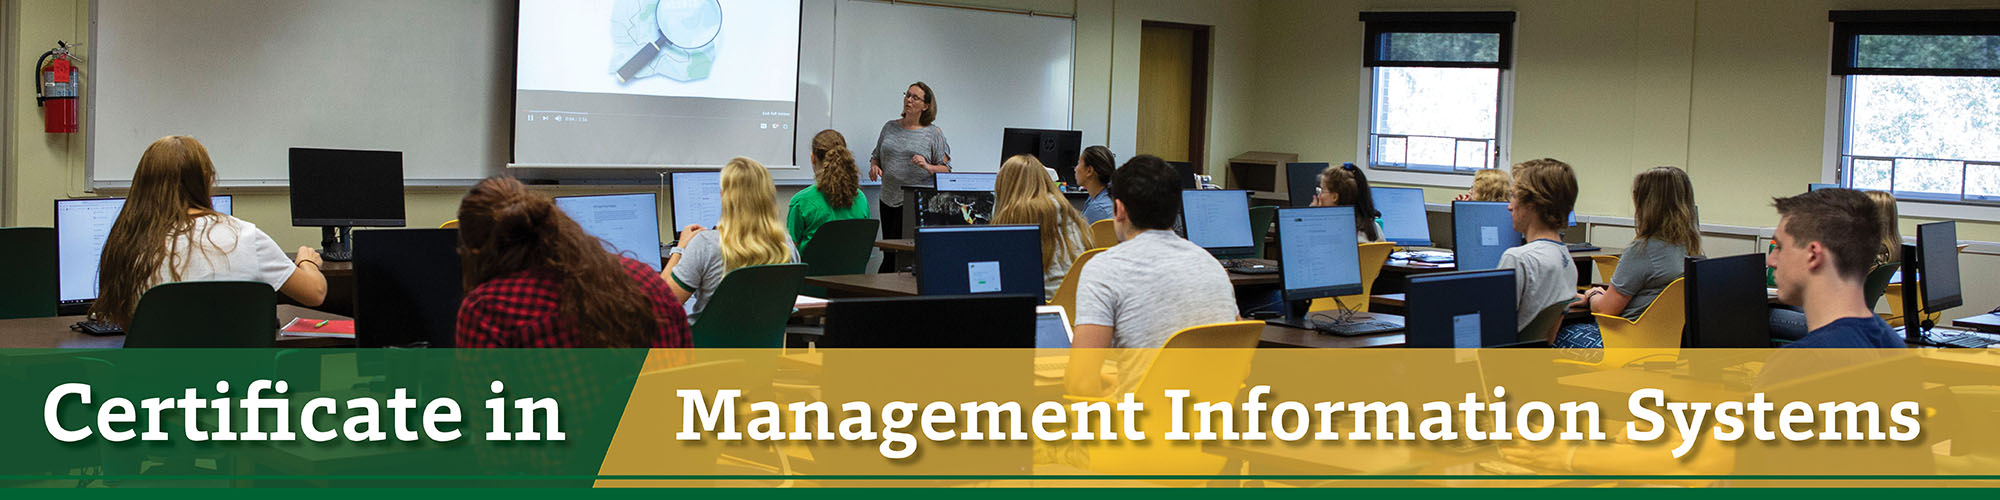 Management Information Systems Certificate at BHSU